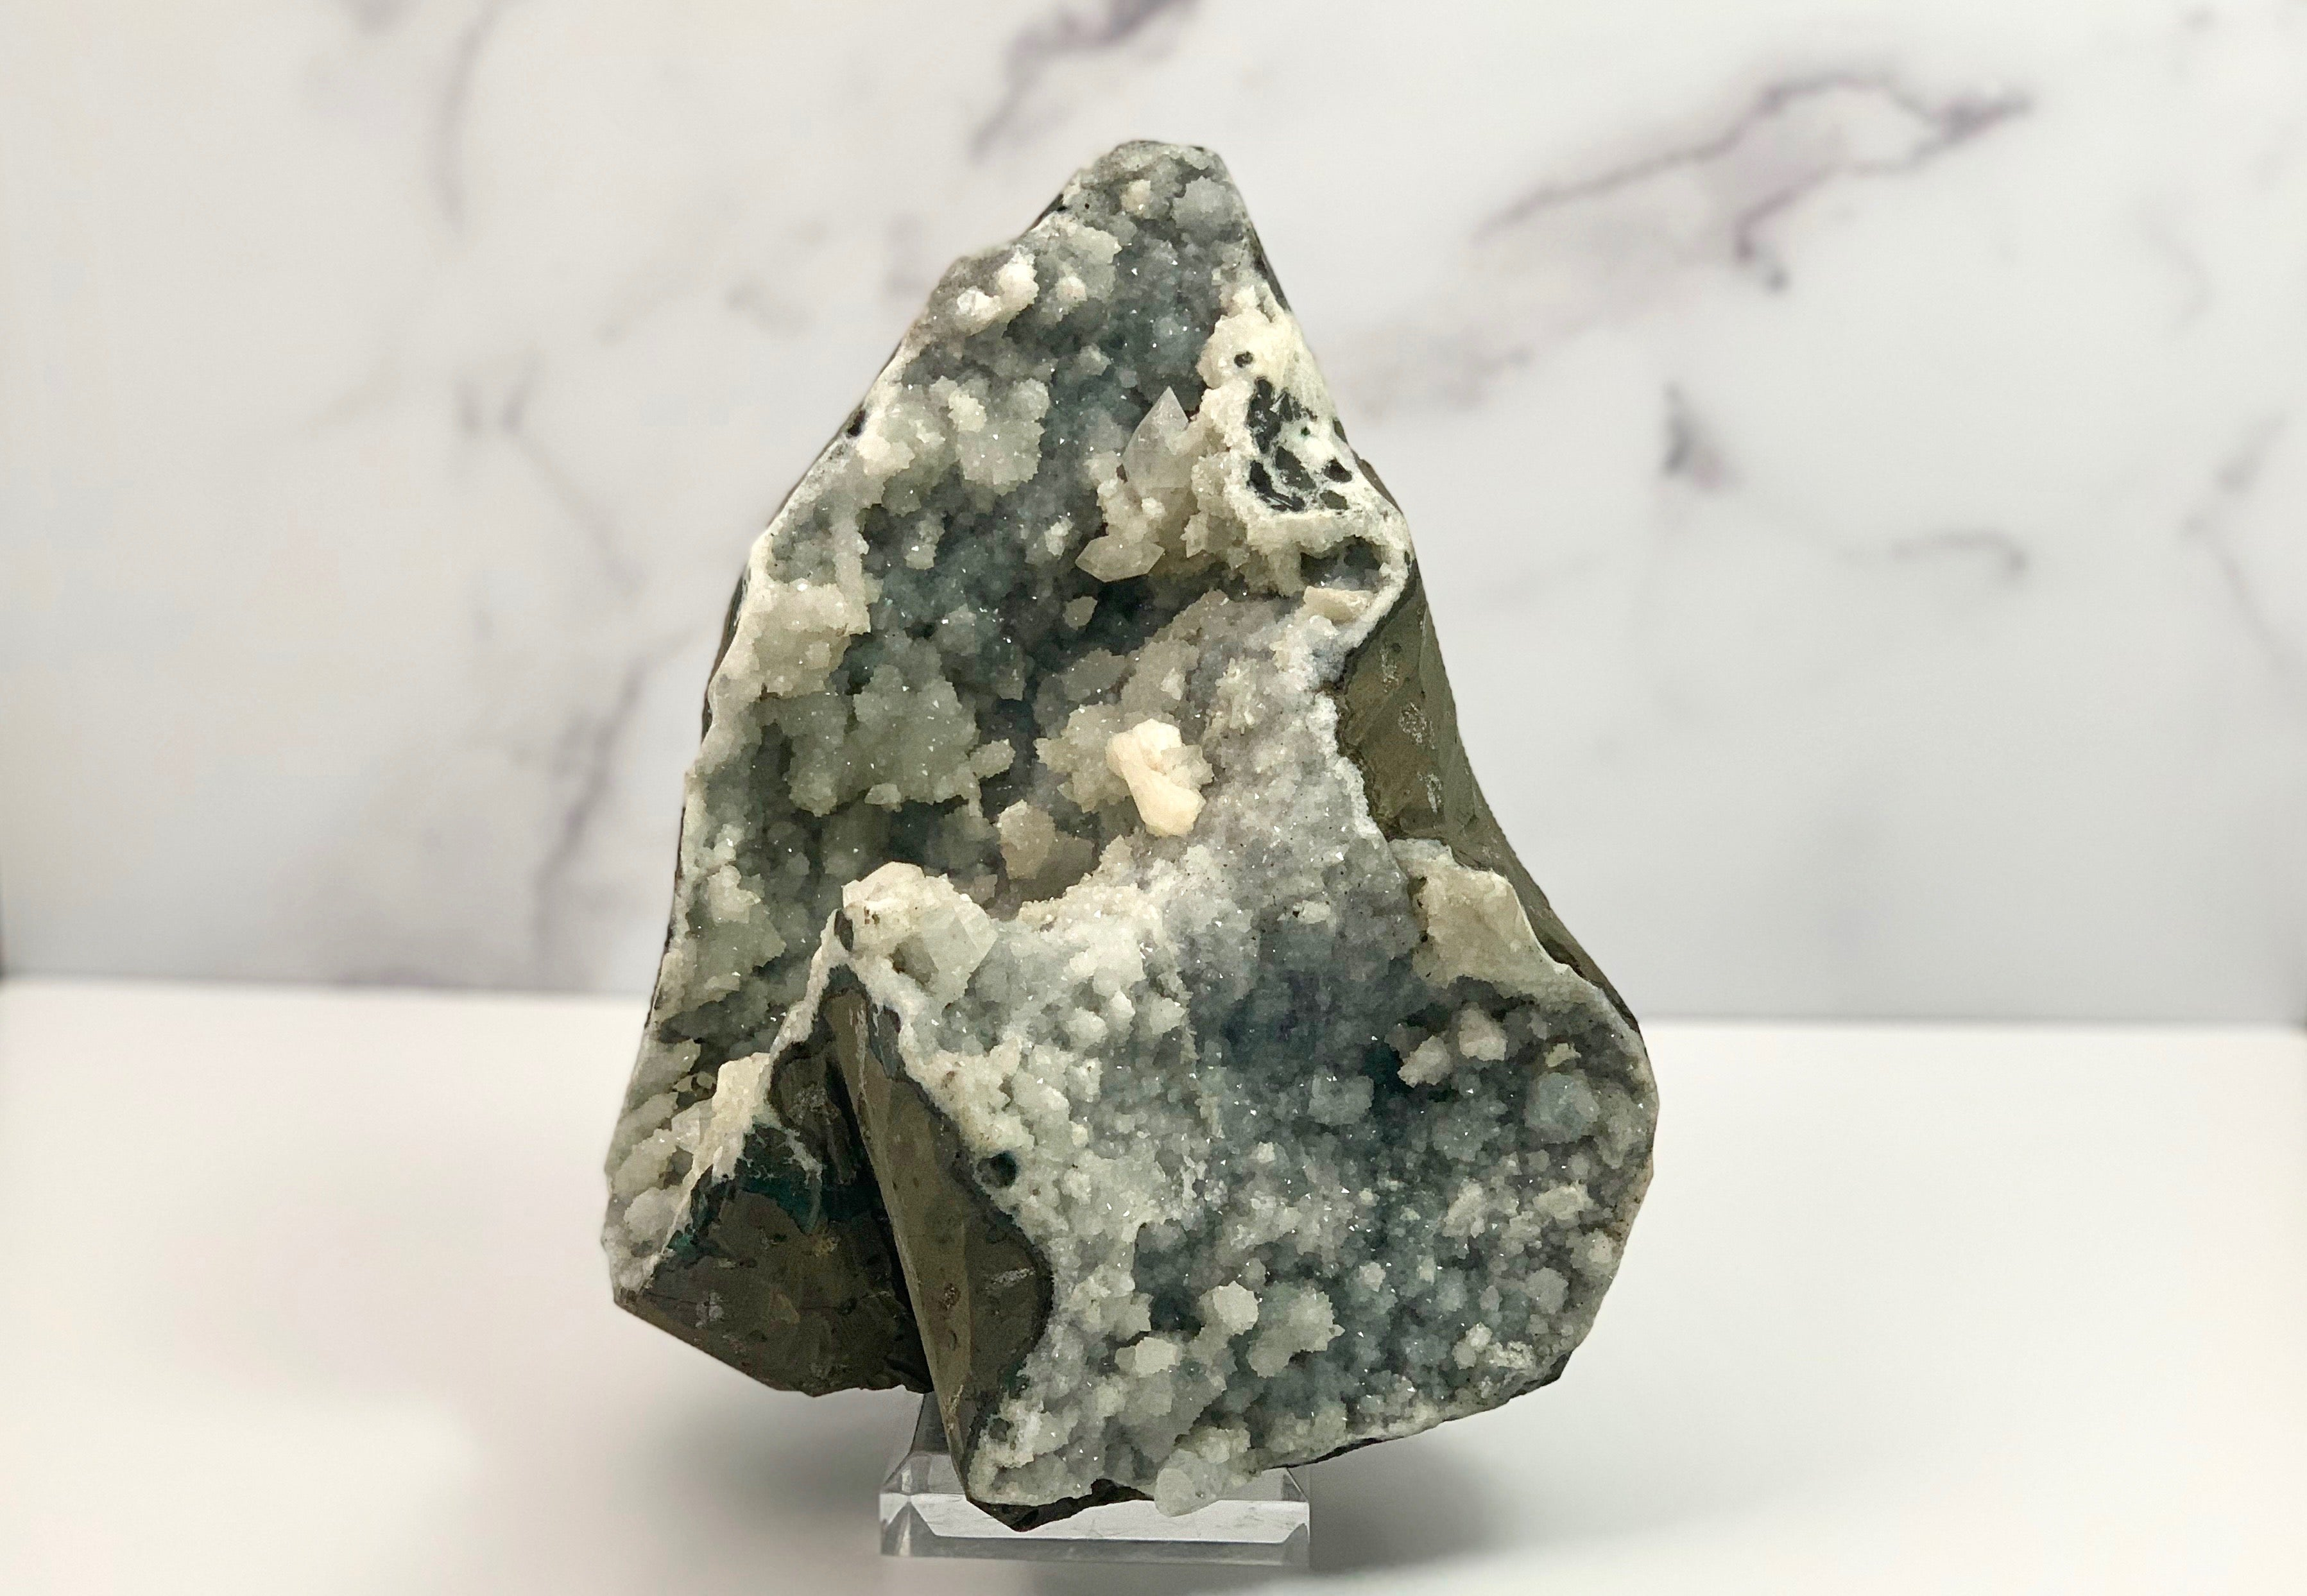 Large Druzy Chalcedony with Apophyllite and Stilbite